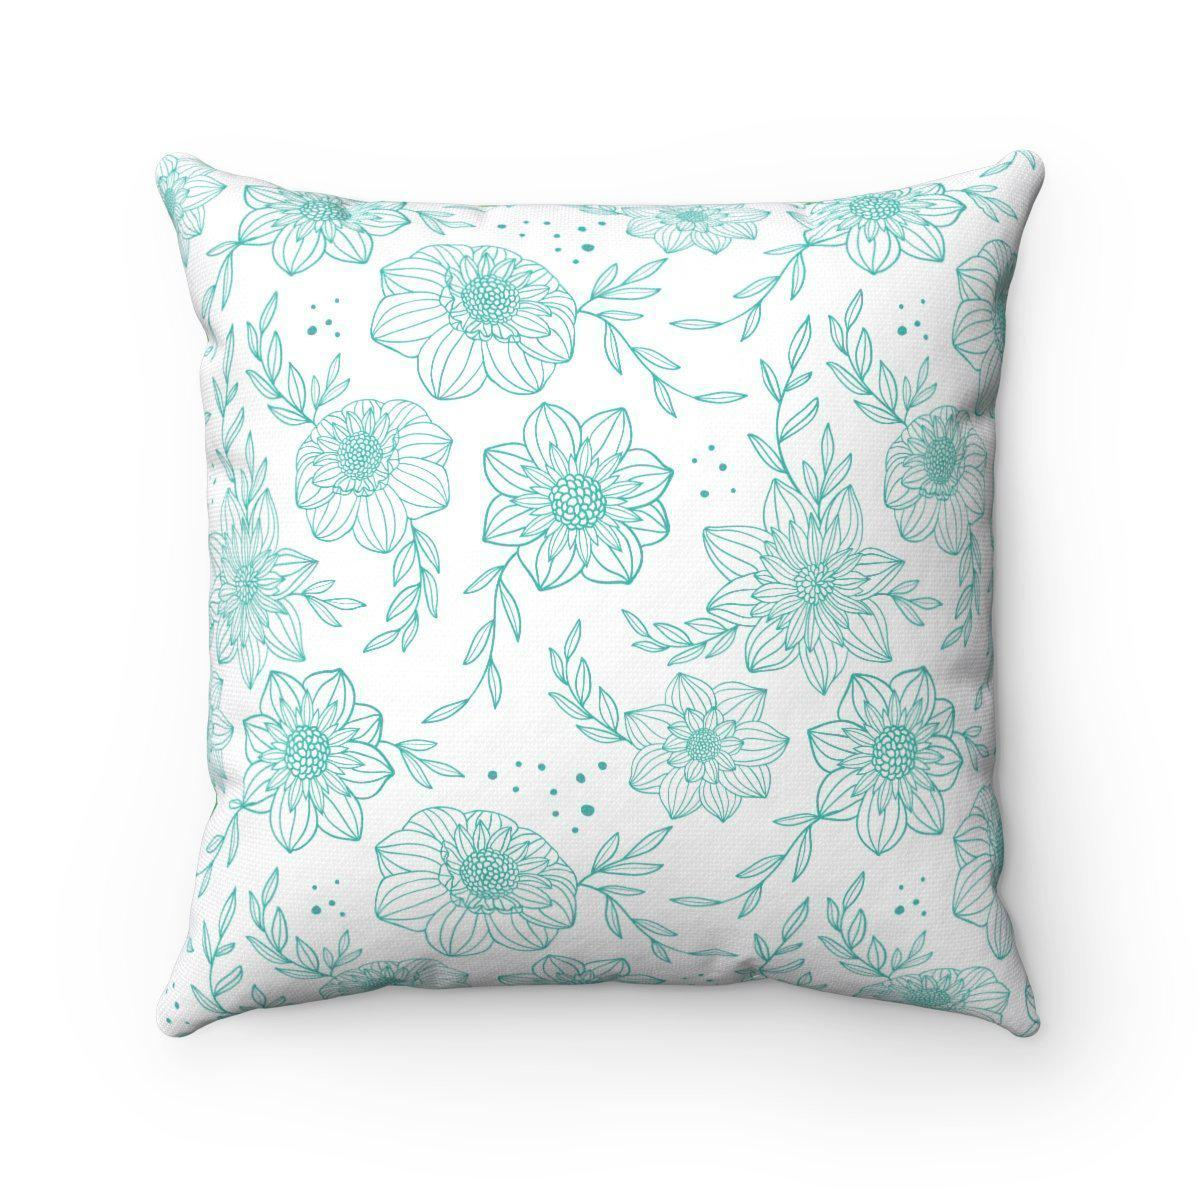 Garden Double sided modern decorative cushion cover-Home Decor - Decorative Accents - Pillows & Throws - Decorative Pillows-Maison d'Elite-20x20-Très Elite